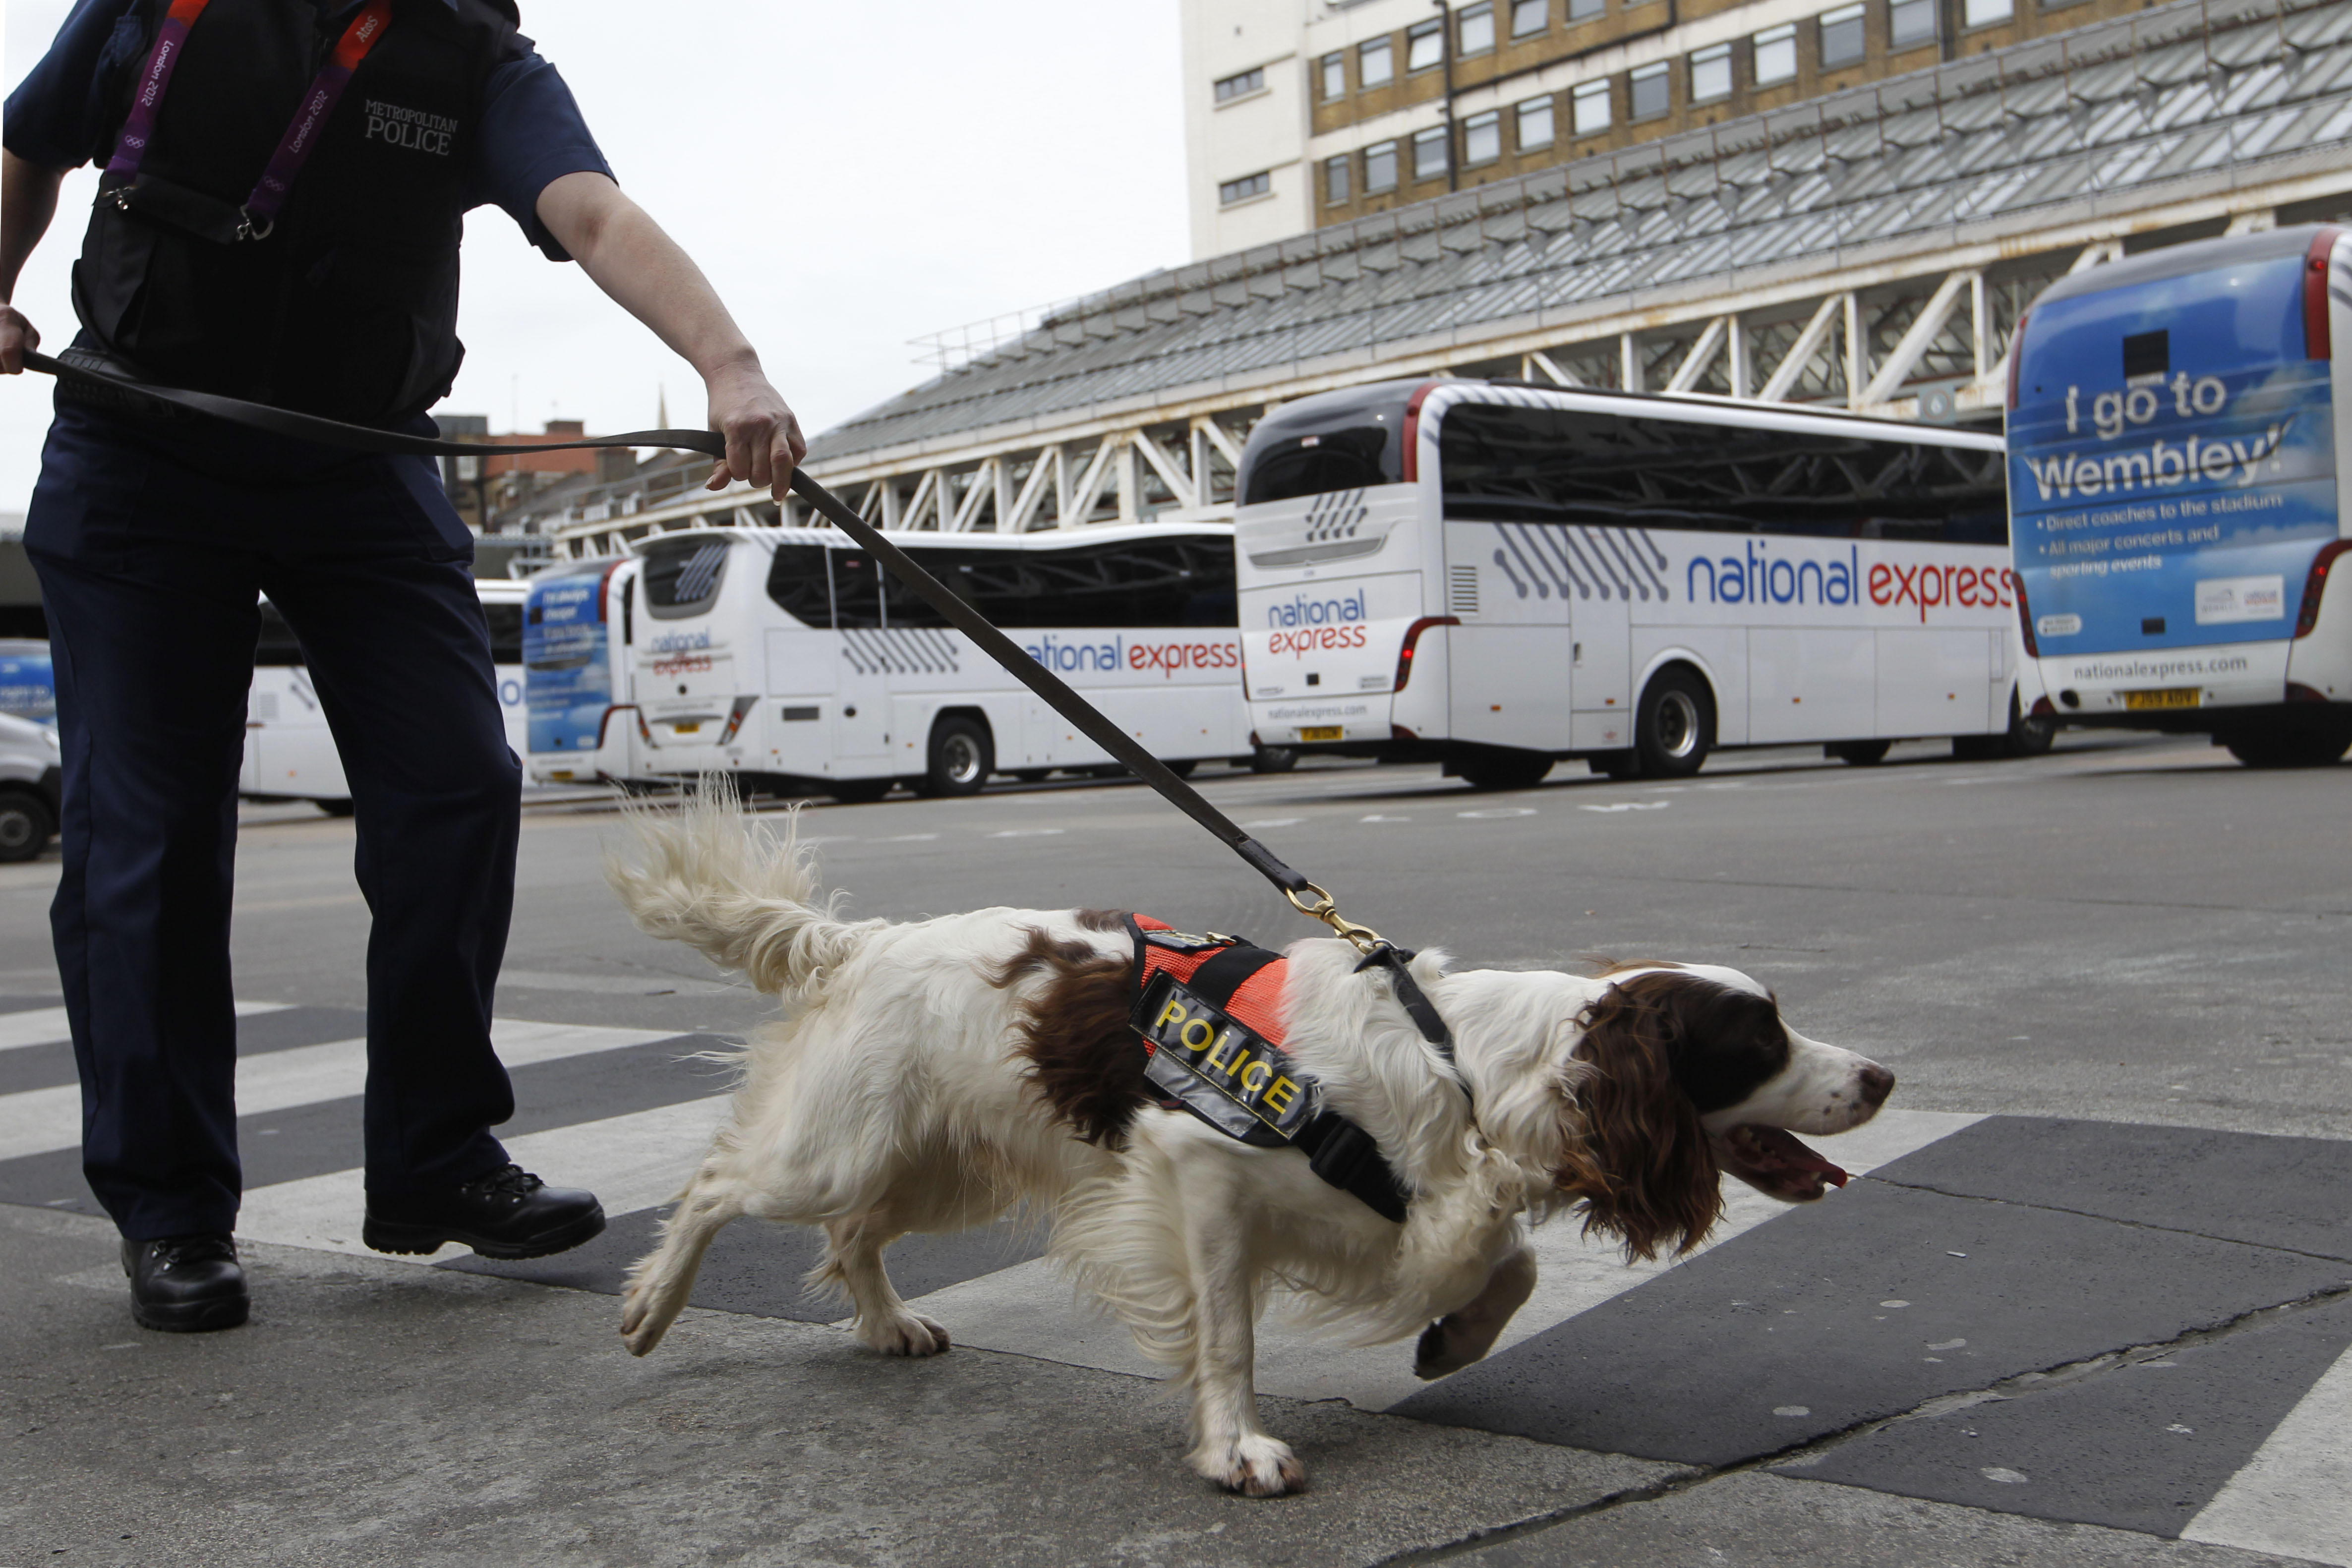 Metropolitan specialist dog 'Chester' walks across the coach station in between sniffing luggage in the run up to the London 2012 Olympic Games at Victoria Coach Station on July 12, 2012